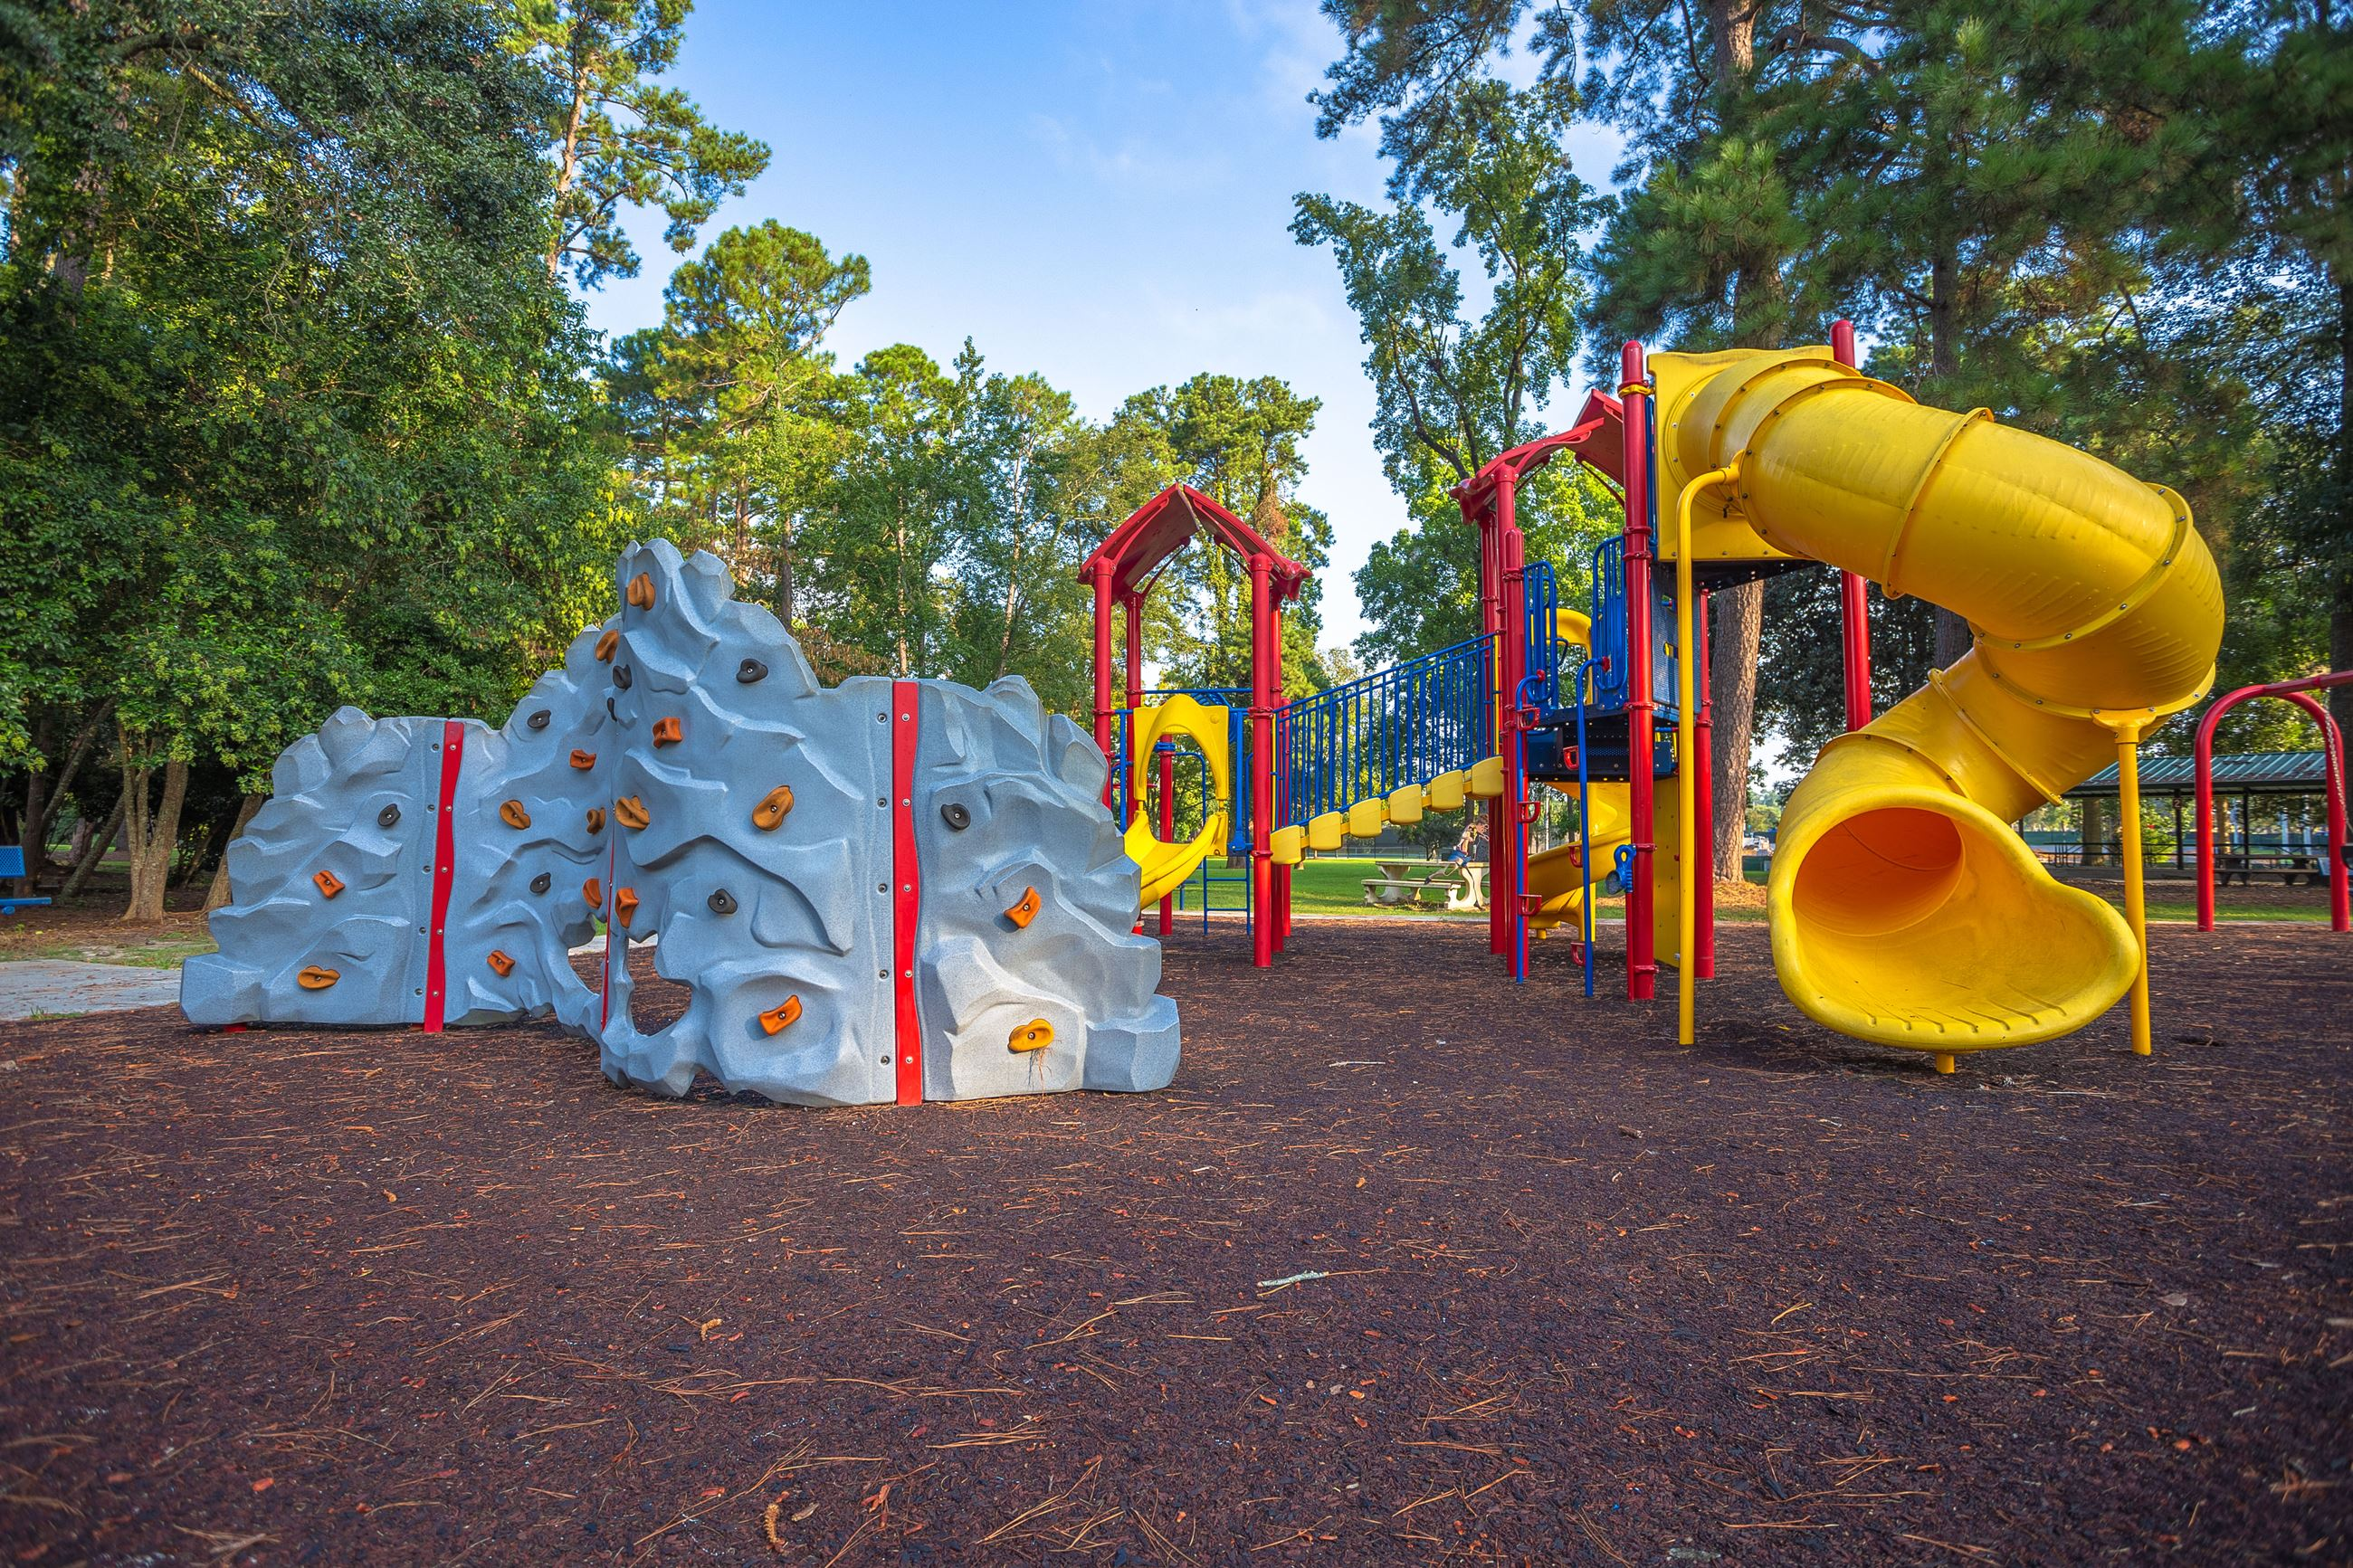 An image of a playground with a rock wall and a yellow slide.